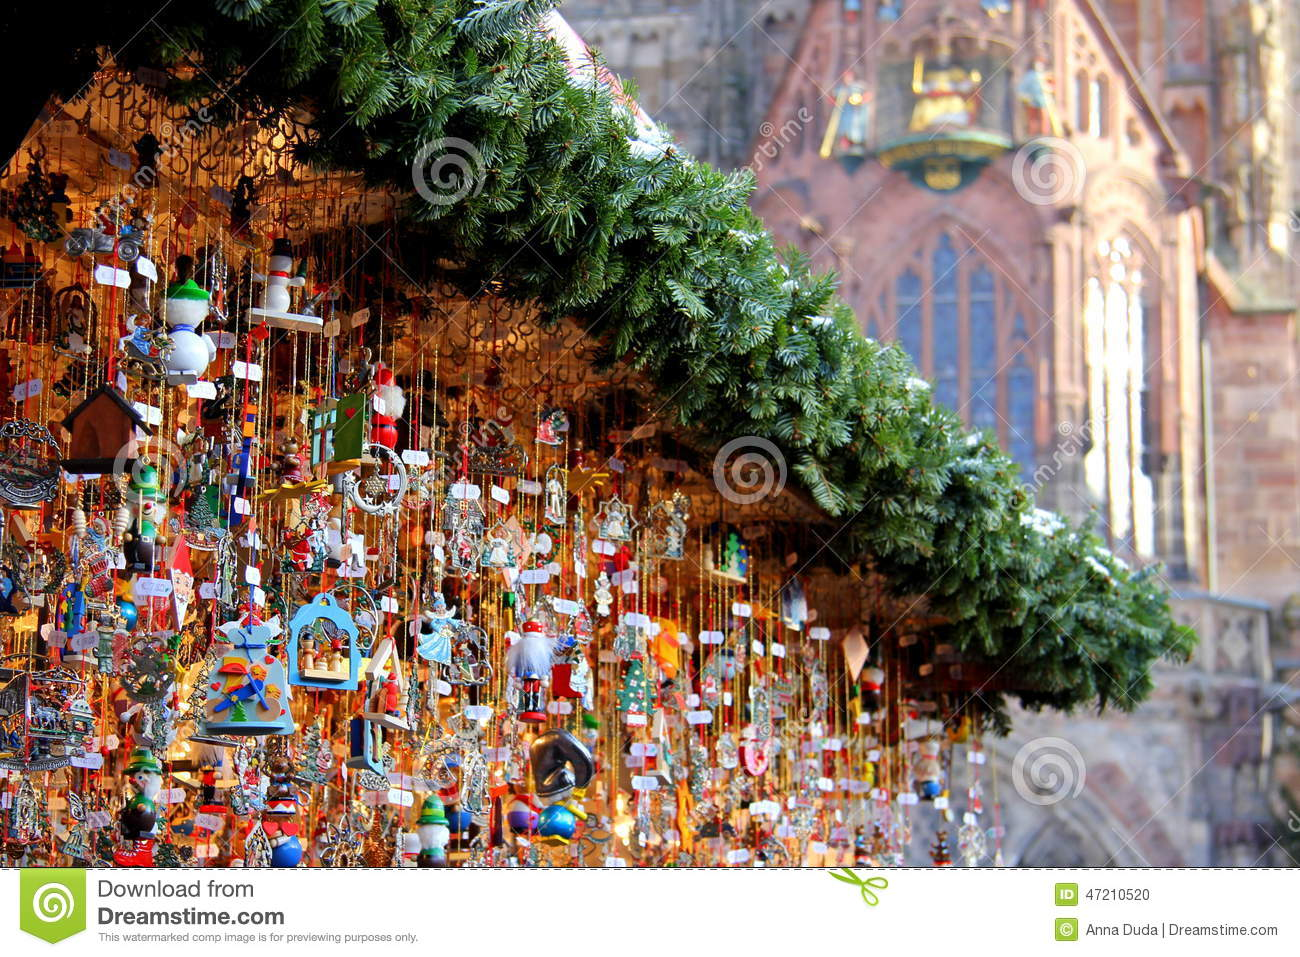 Nuremberg Christmas Market.Christmas Market Stock Photo Image Of Twigs Christmas